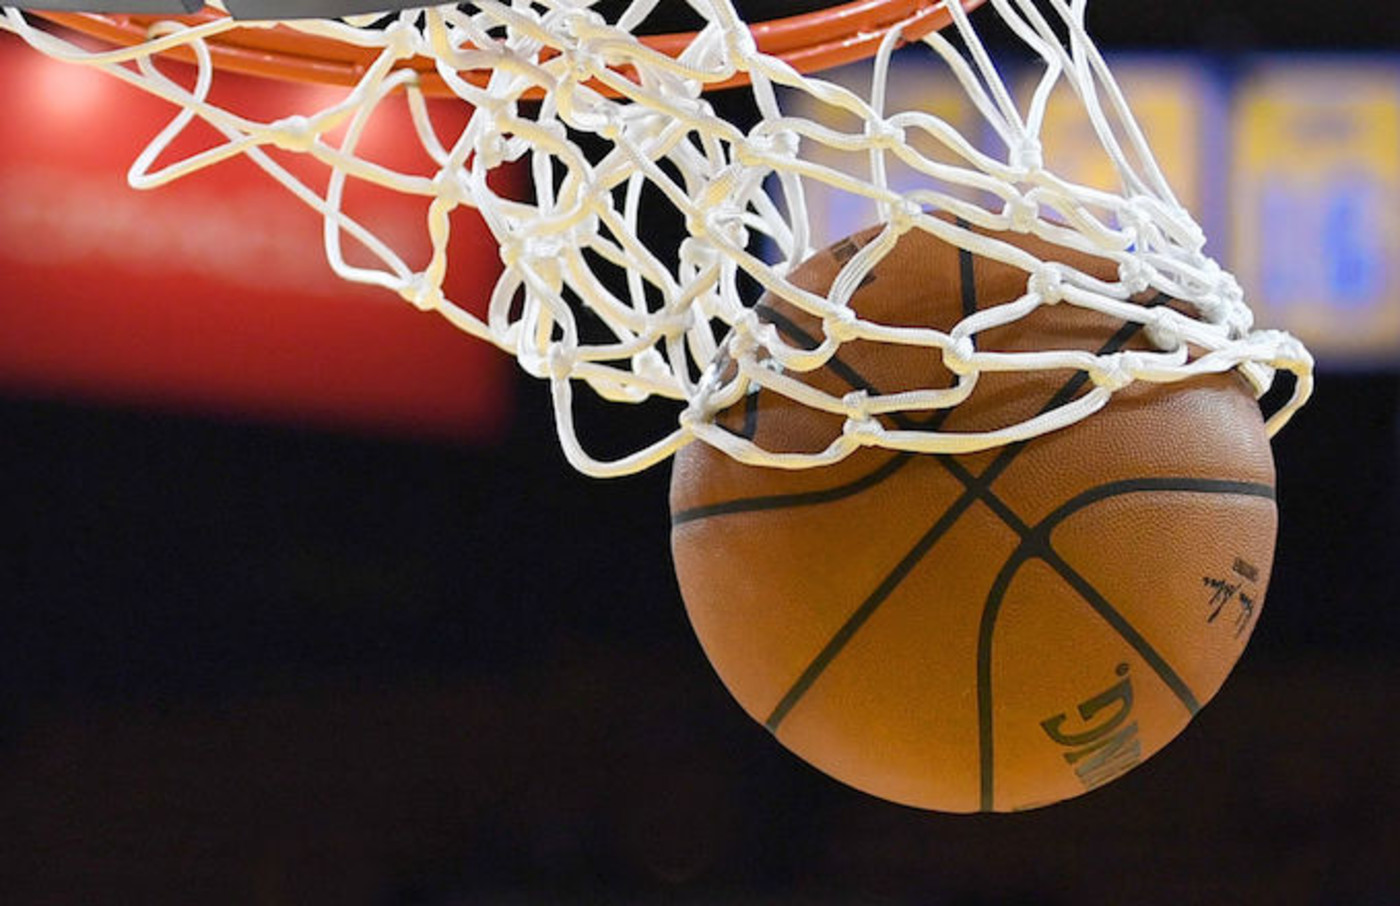 North Carolina Youth Basketball Player Dies On Court